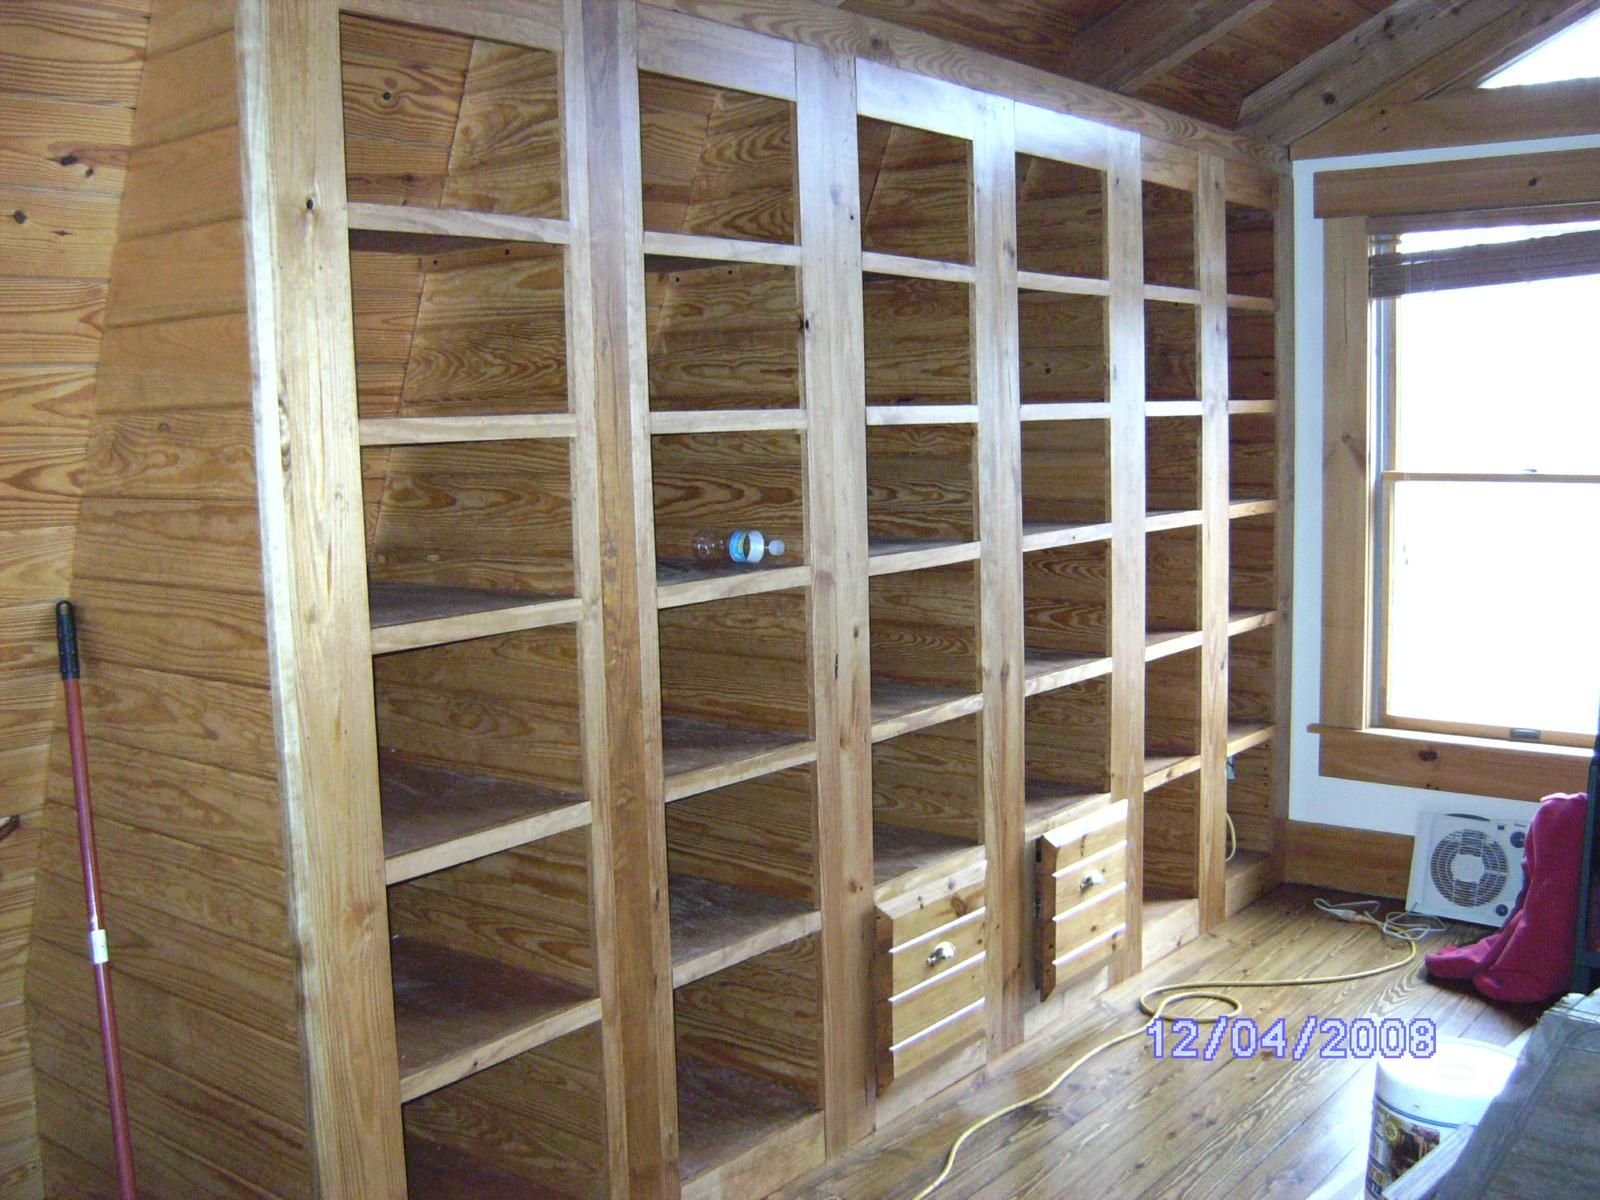 Built-In Bookcases with Two File Cabinets